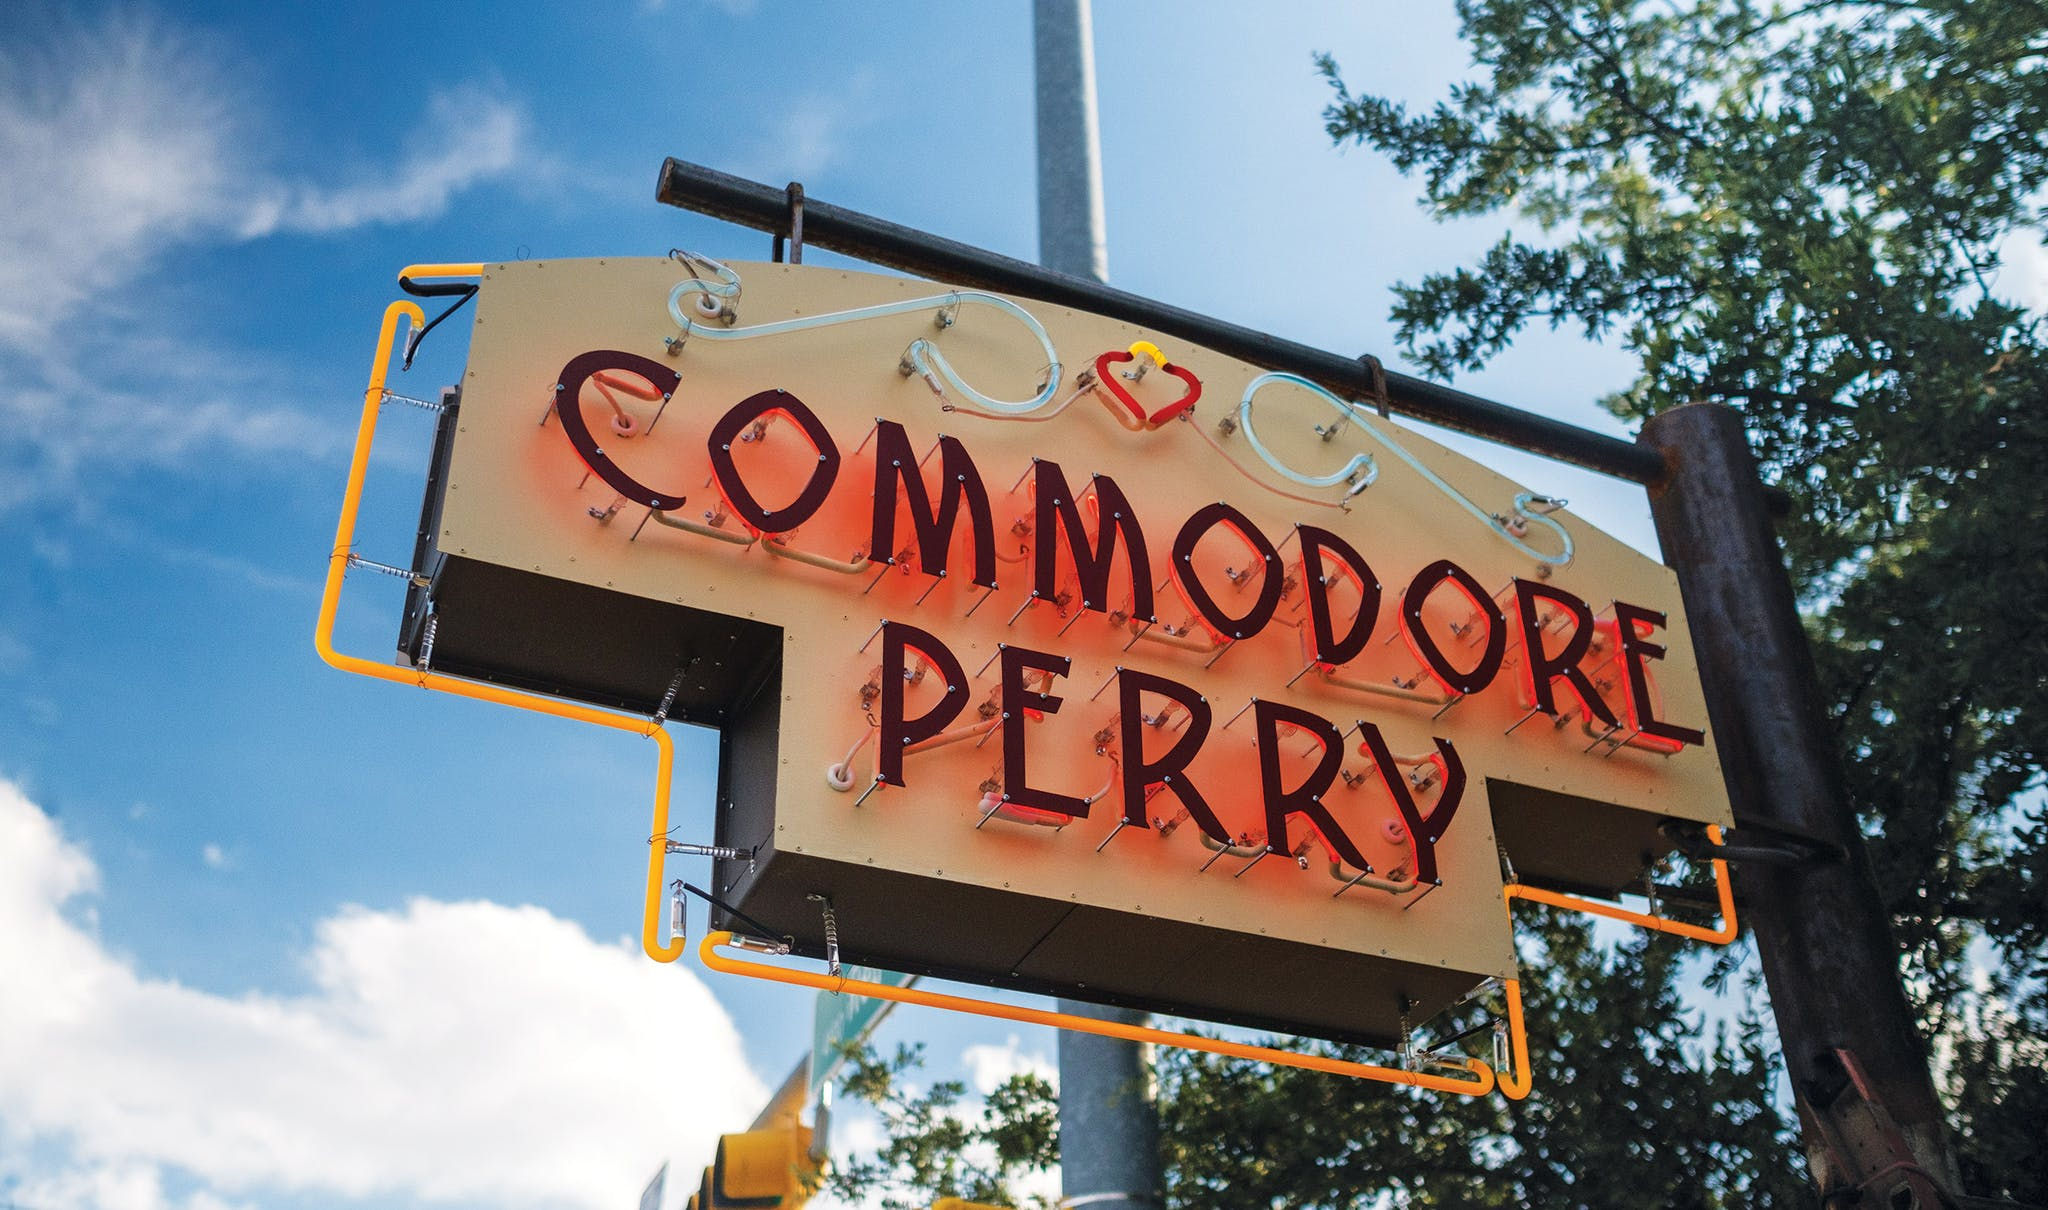 Located on Red River Street, just across the street from a Coffee Bean and a Foot Locker, the Commodore Perry Estate's unassuming entrance belies its grandeur—and size.